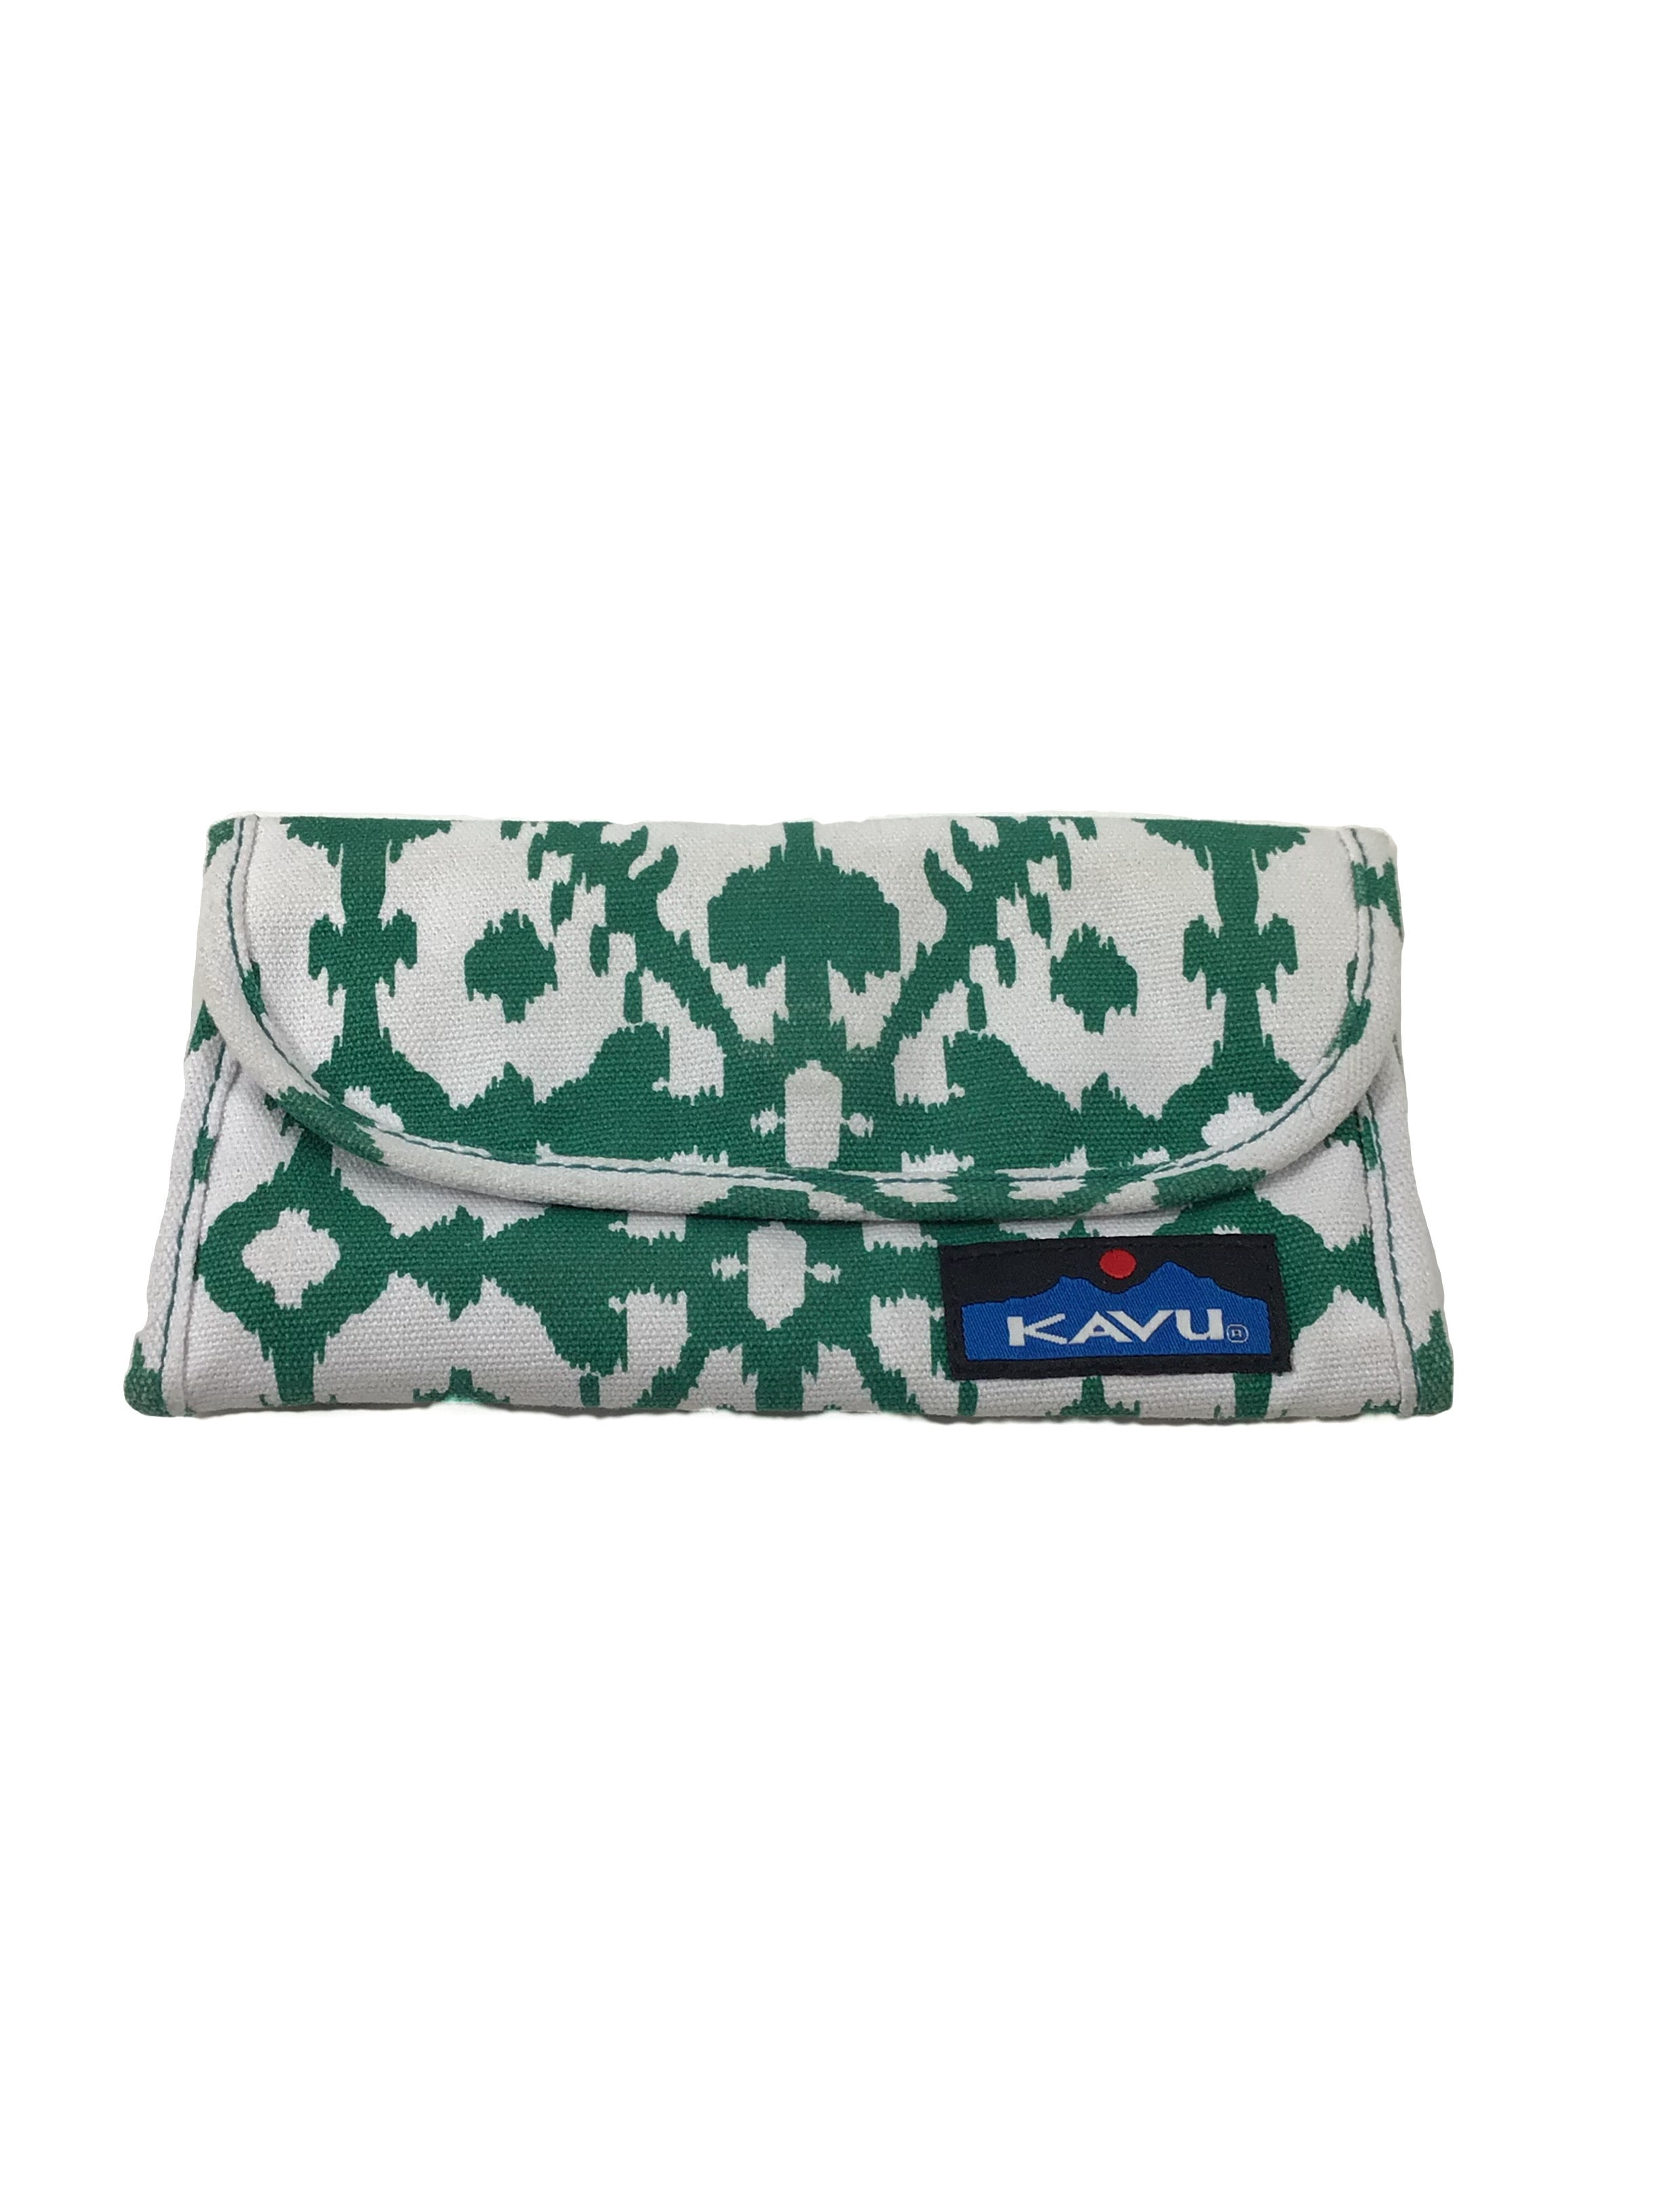 Primary Photo - BRAND: KAVU <BR>STYLE: WALLET <BR>COLOR: GREEN <BR>SIZE: MEDIUM <BR>SKU: 213-213149-1396